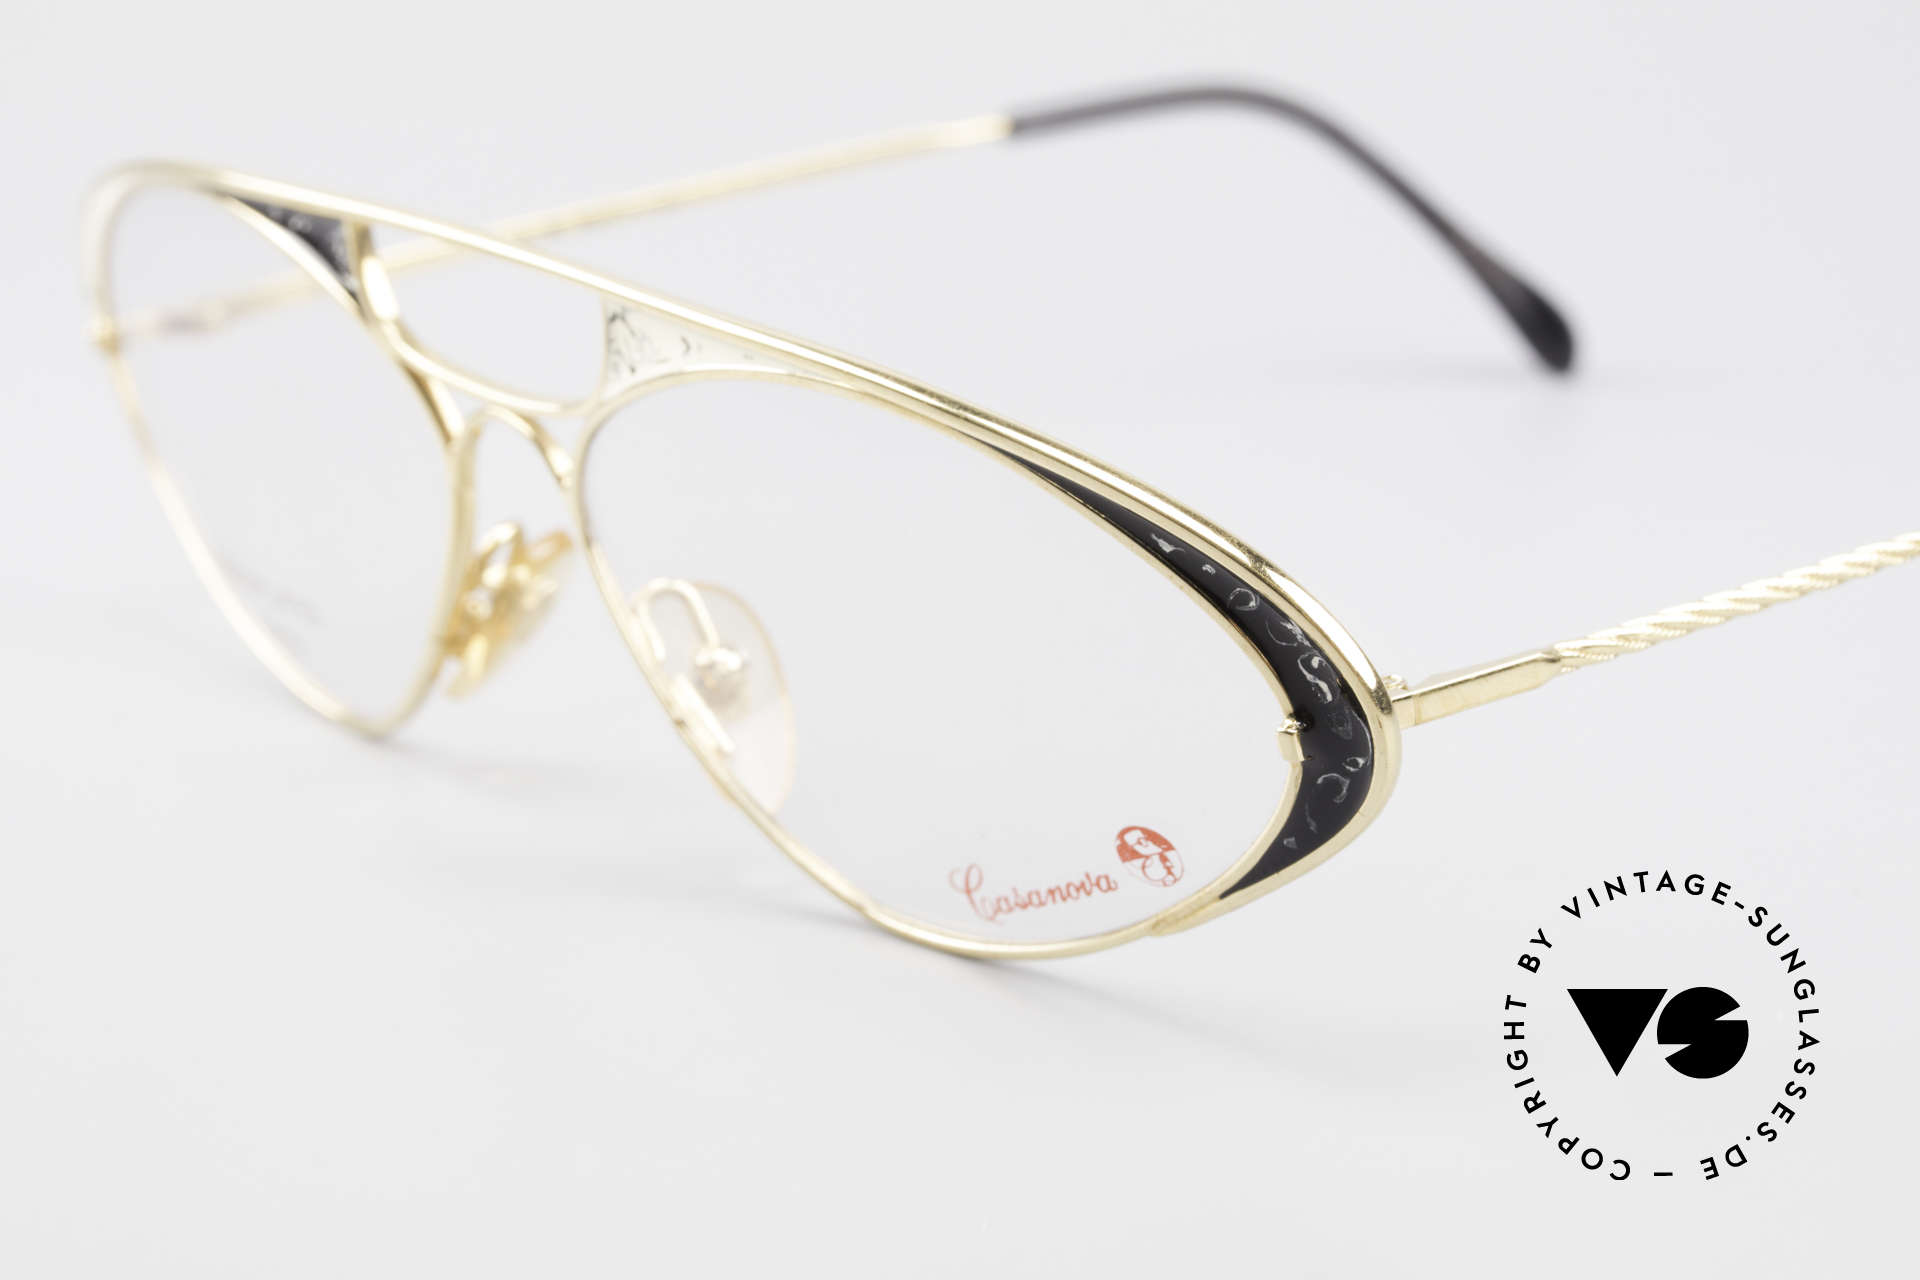 Casanova LC8 80's Vintage Ladies Eyeglasses, a true rarity and collector's item (pure Haute Couture), Made for Women